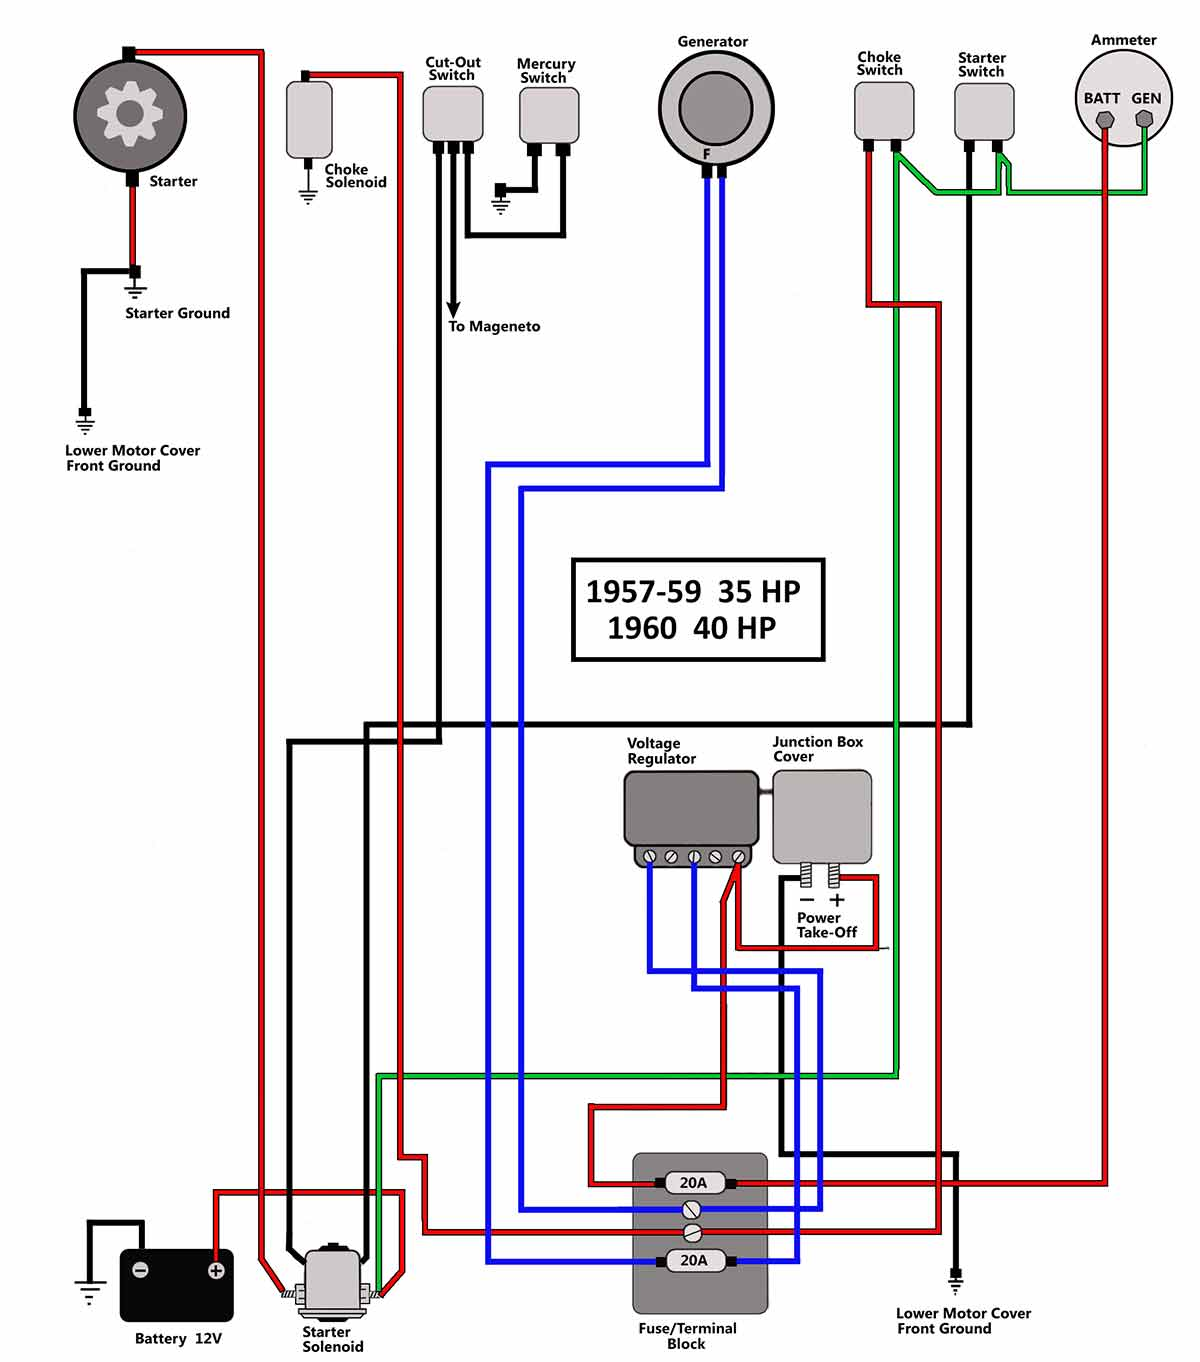 1957 60_35 40 help with wiring ignition and connecting battery to 1973 40hp 1964 johnson outboard 40 hp wiring diagram at bayanpartner.co